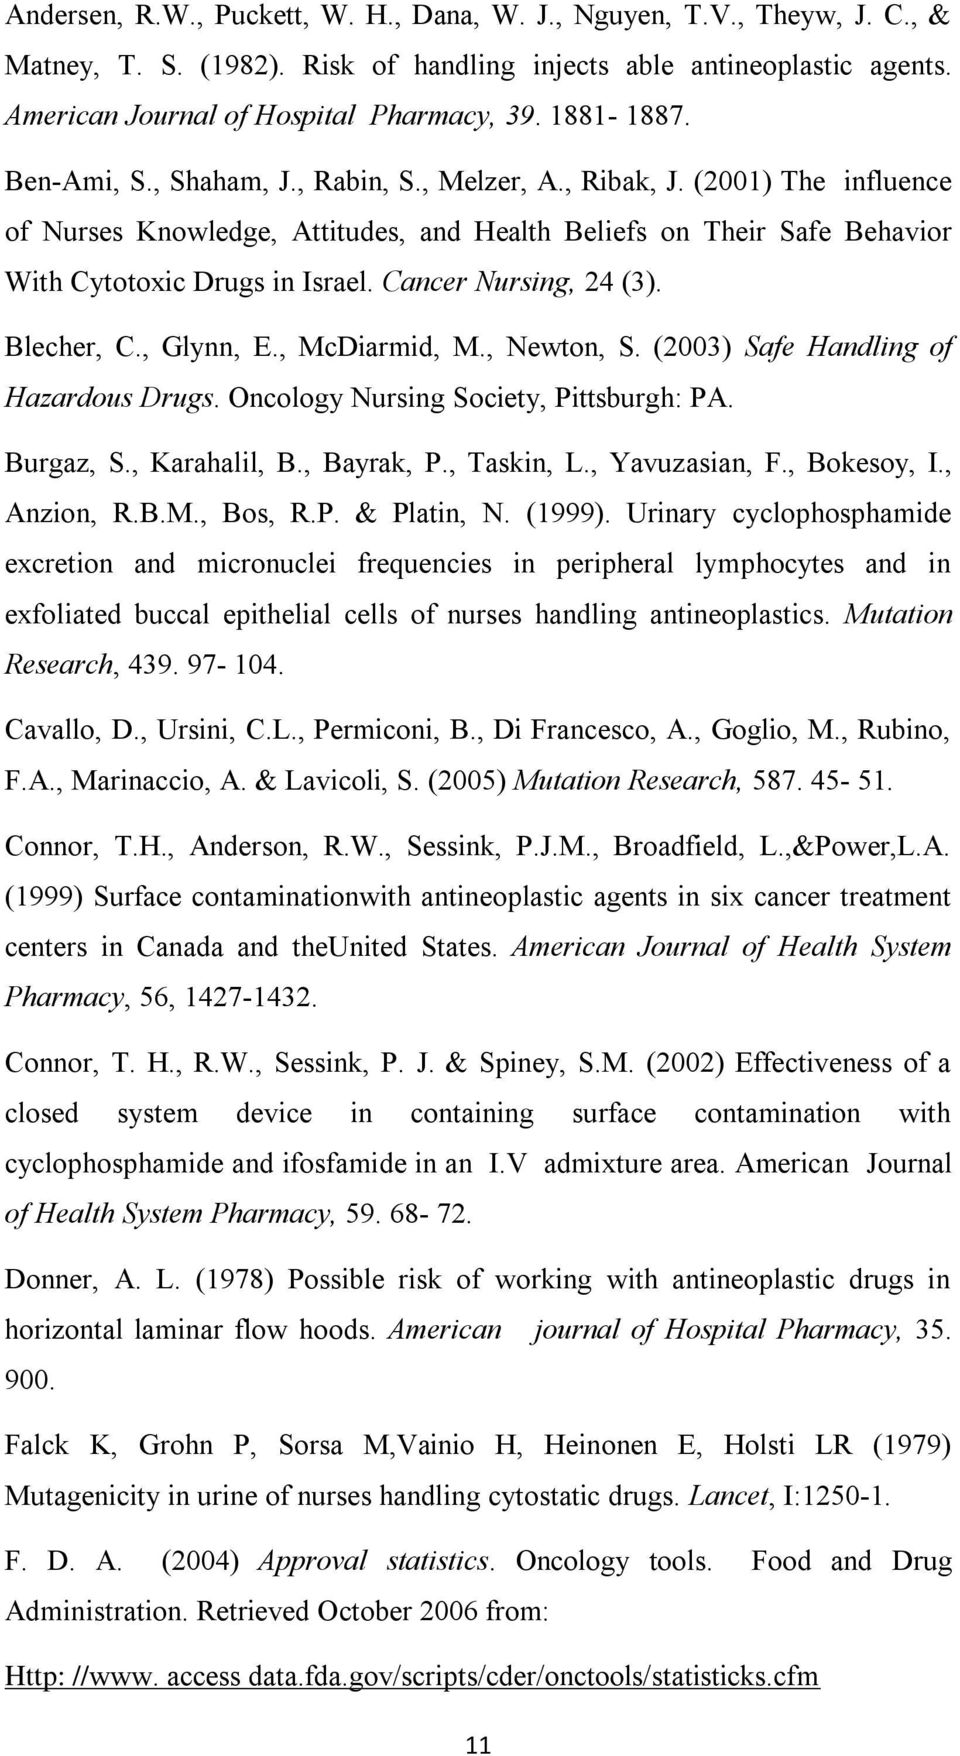 Cancer Nursing, 24 (3). Blecher, C., Glynn, E., McDiarmid, M., Newton, S. (2003) Safe Handling of Hazardous Drugs. Oncology Nursing Society, Pittsburgh: PA. Burgaz, S., Karahalil, B., Bayrak, P.